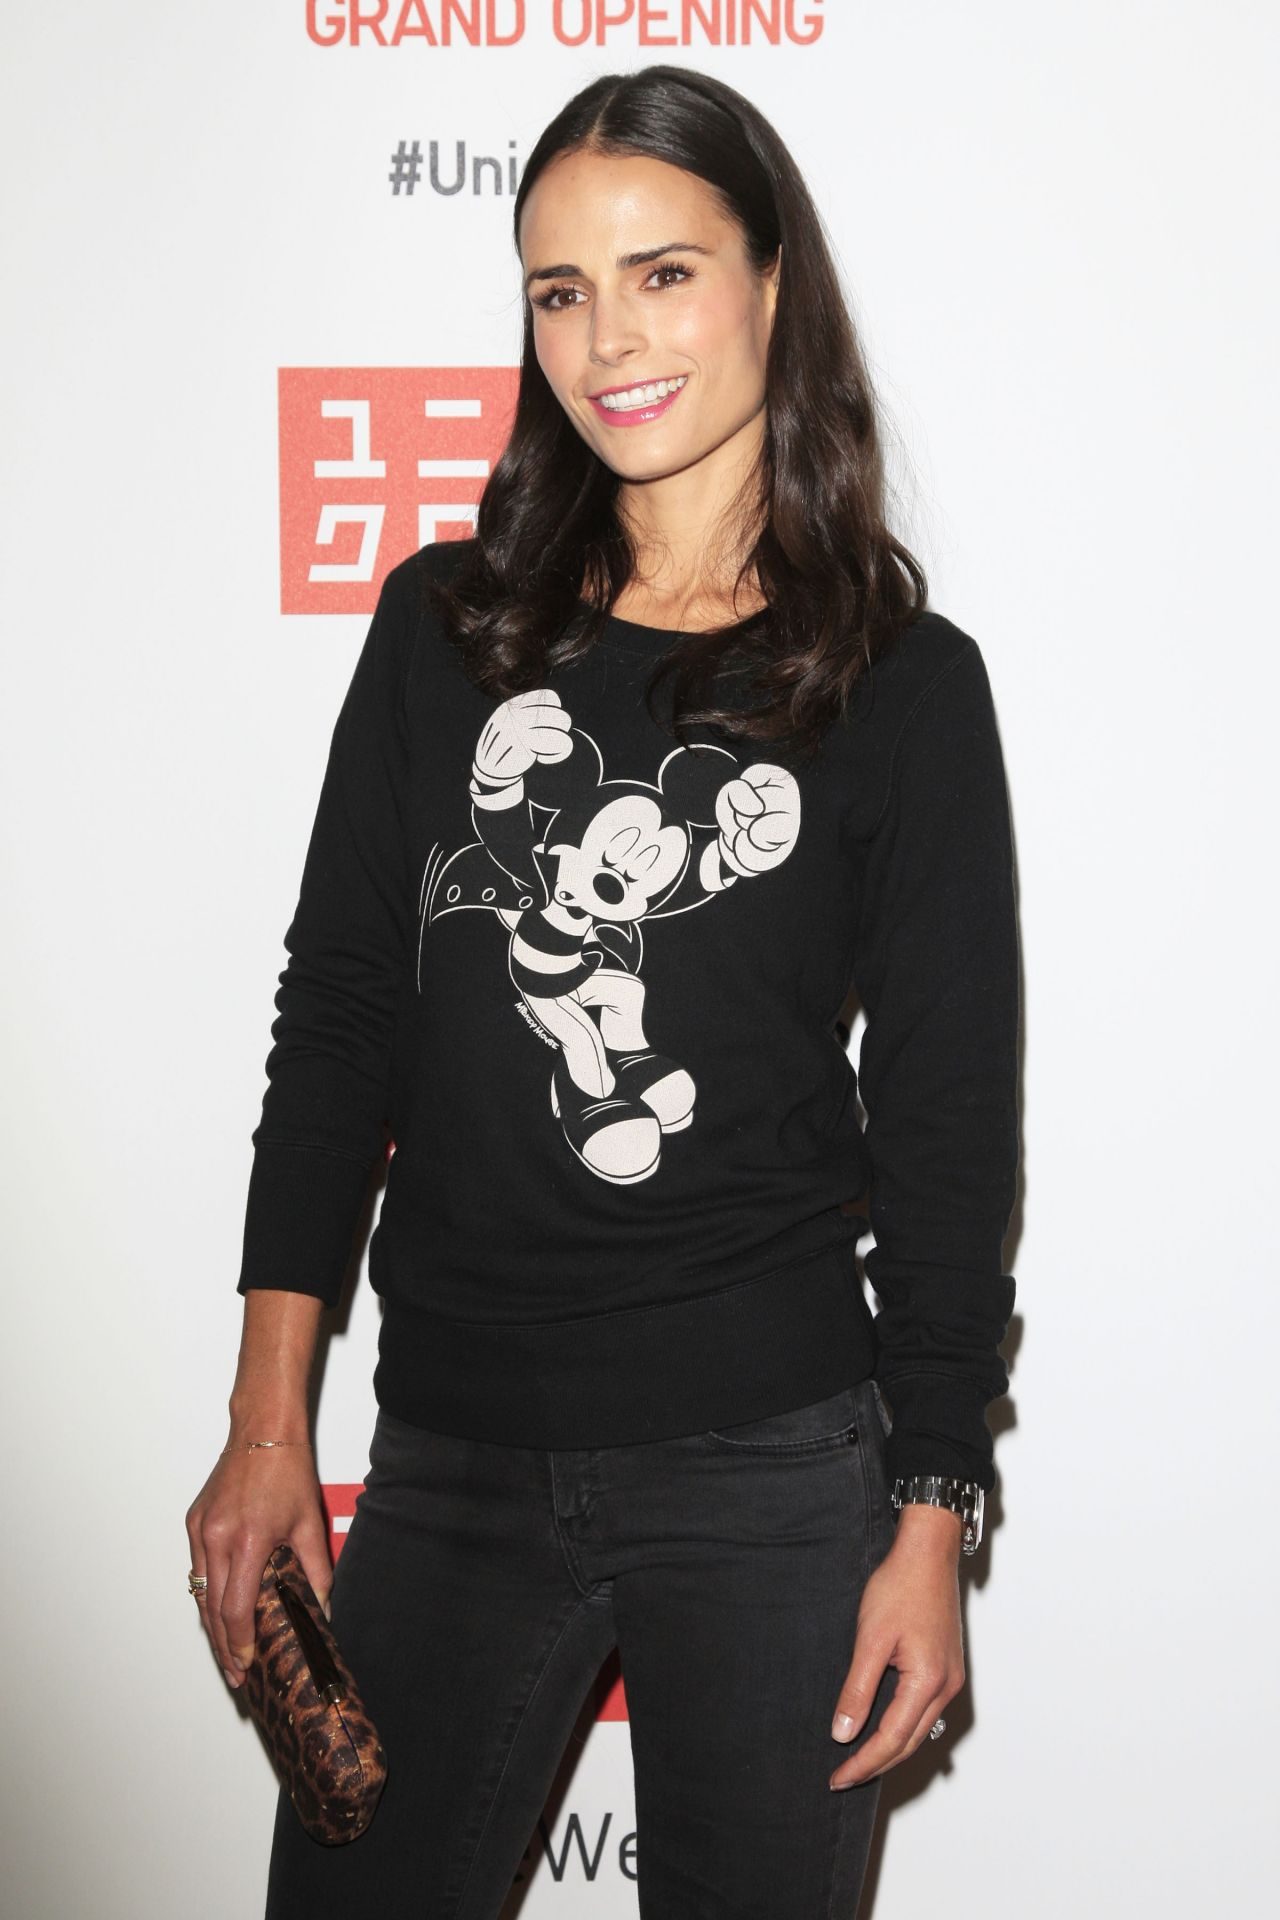 Jordana Brewster - UNIQLO Flagship Store Opening in Los Angeles